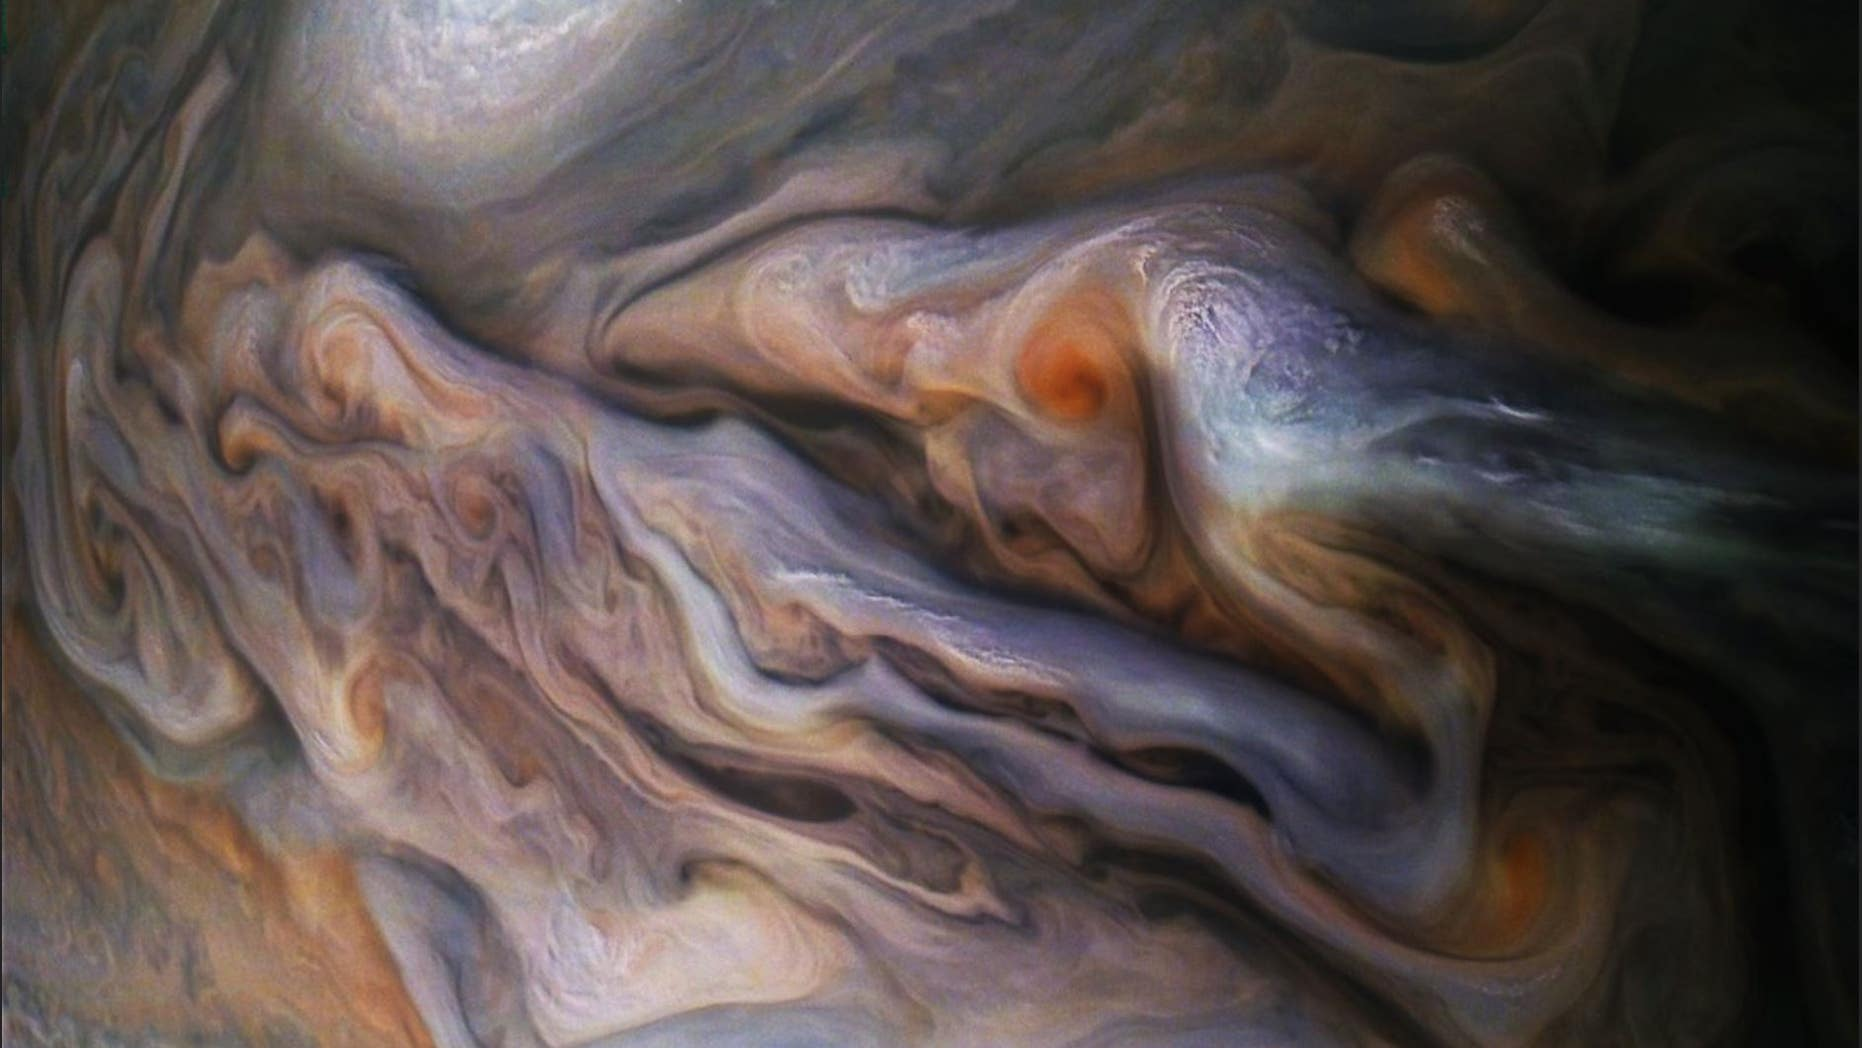 NASA's Juno spacecraft spotted a mysterious creature in the clouds of Jupiter on October 29, 2018.